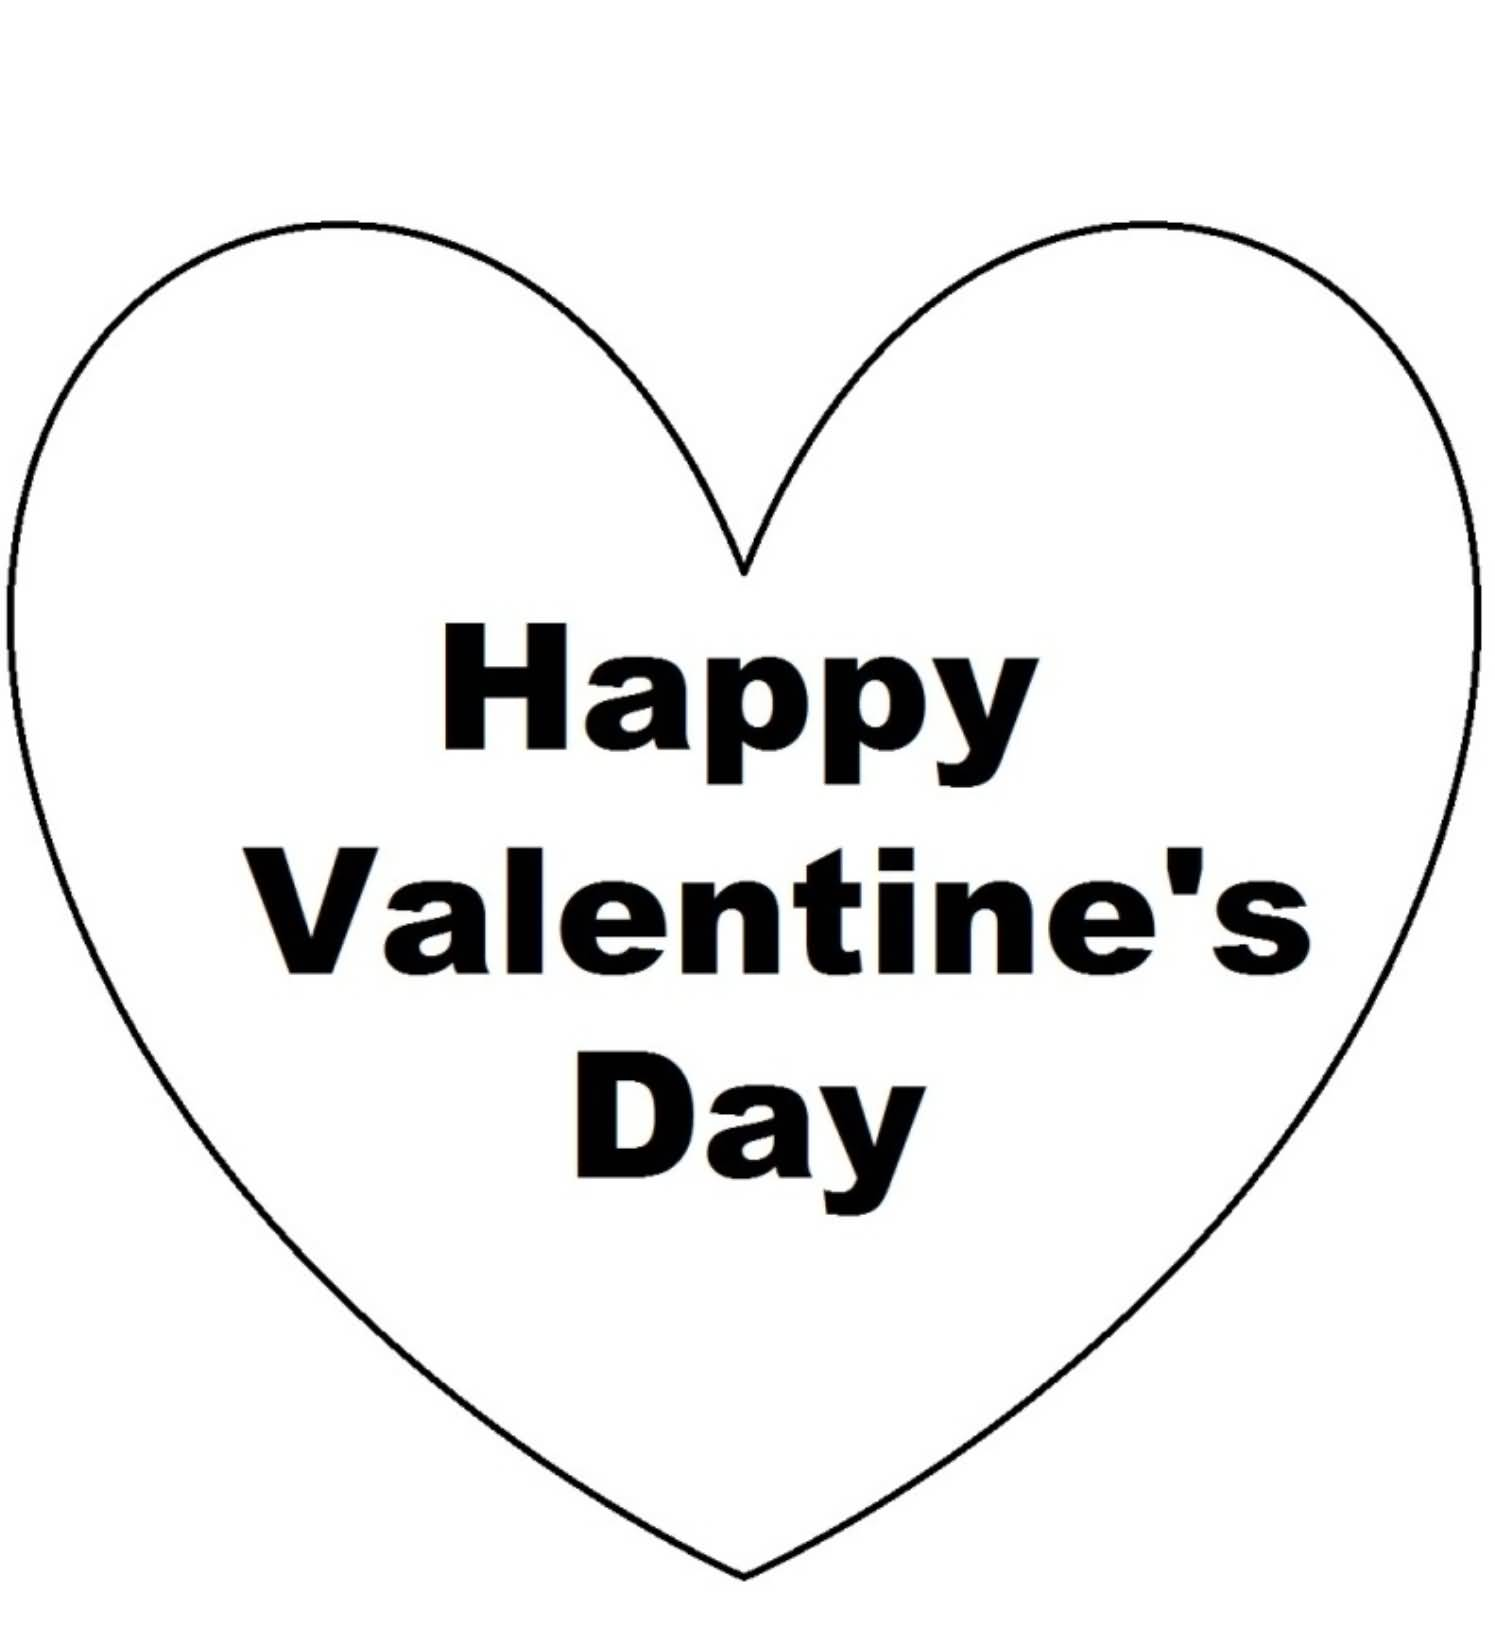 happy valentines day text in heart clipart